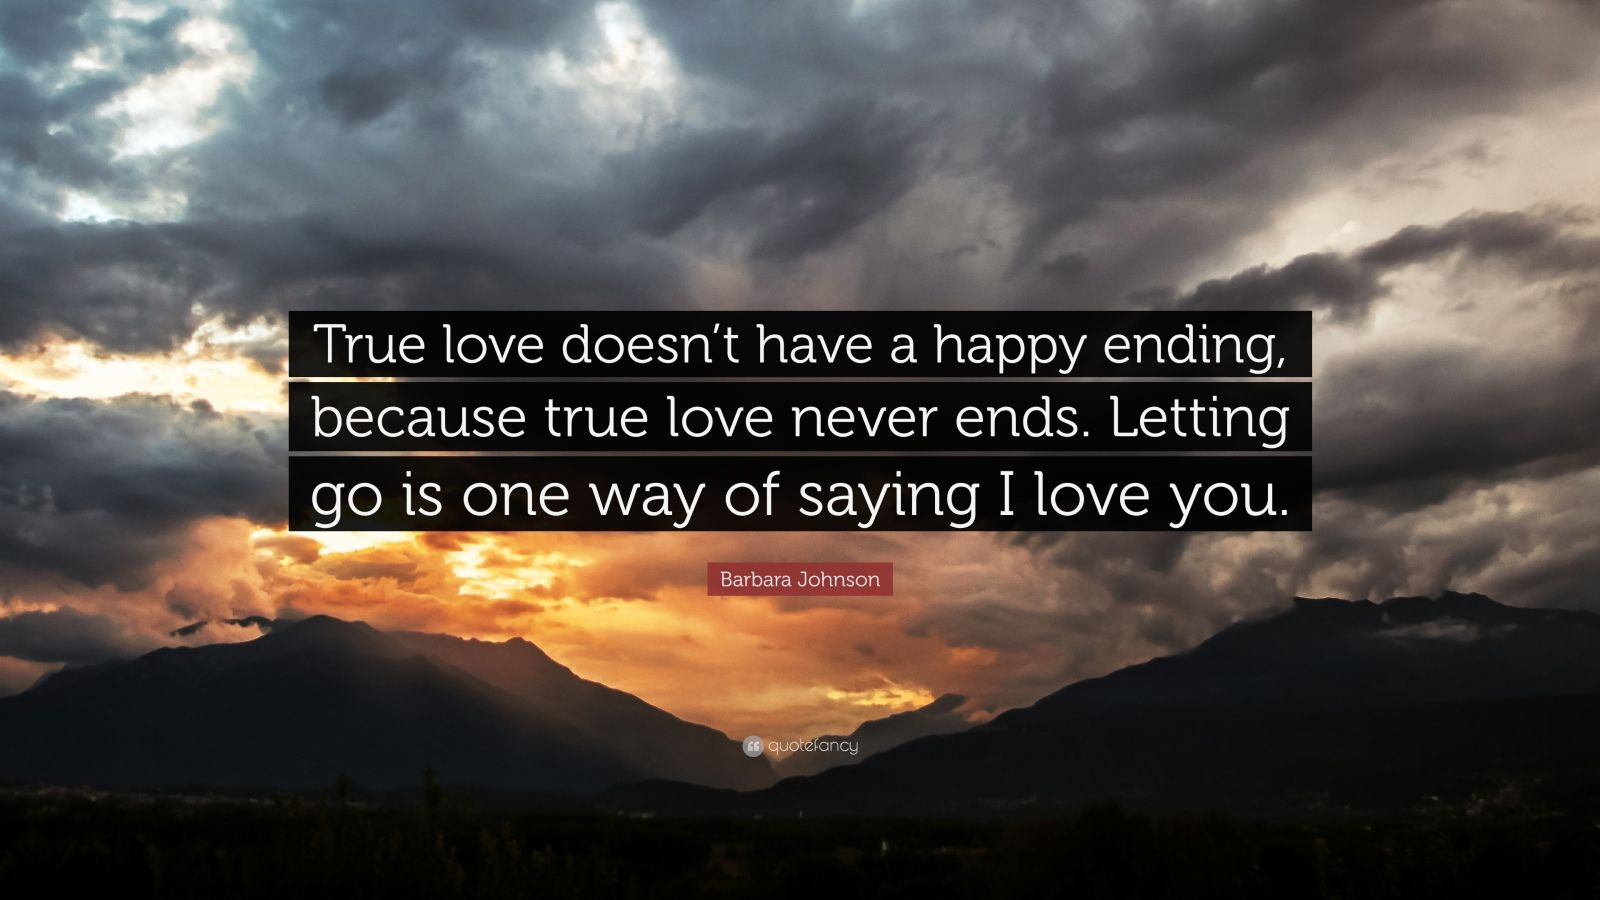 True Love Never End Wallpaper : Barbara Johnson Quote: ?True love doesn t have a happy ending, because true love never ends ...